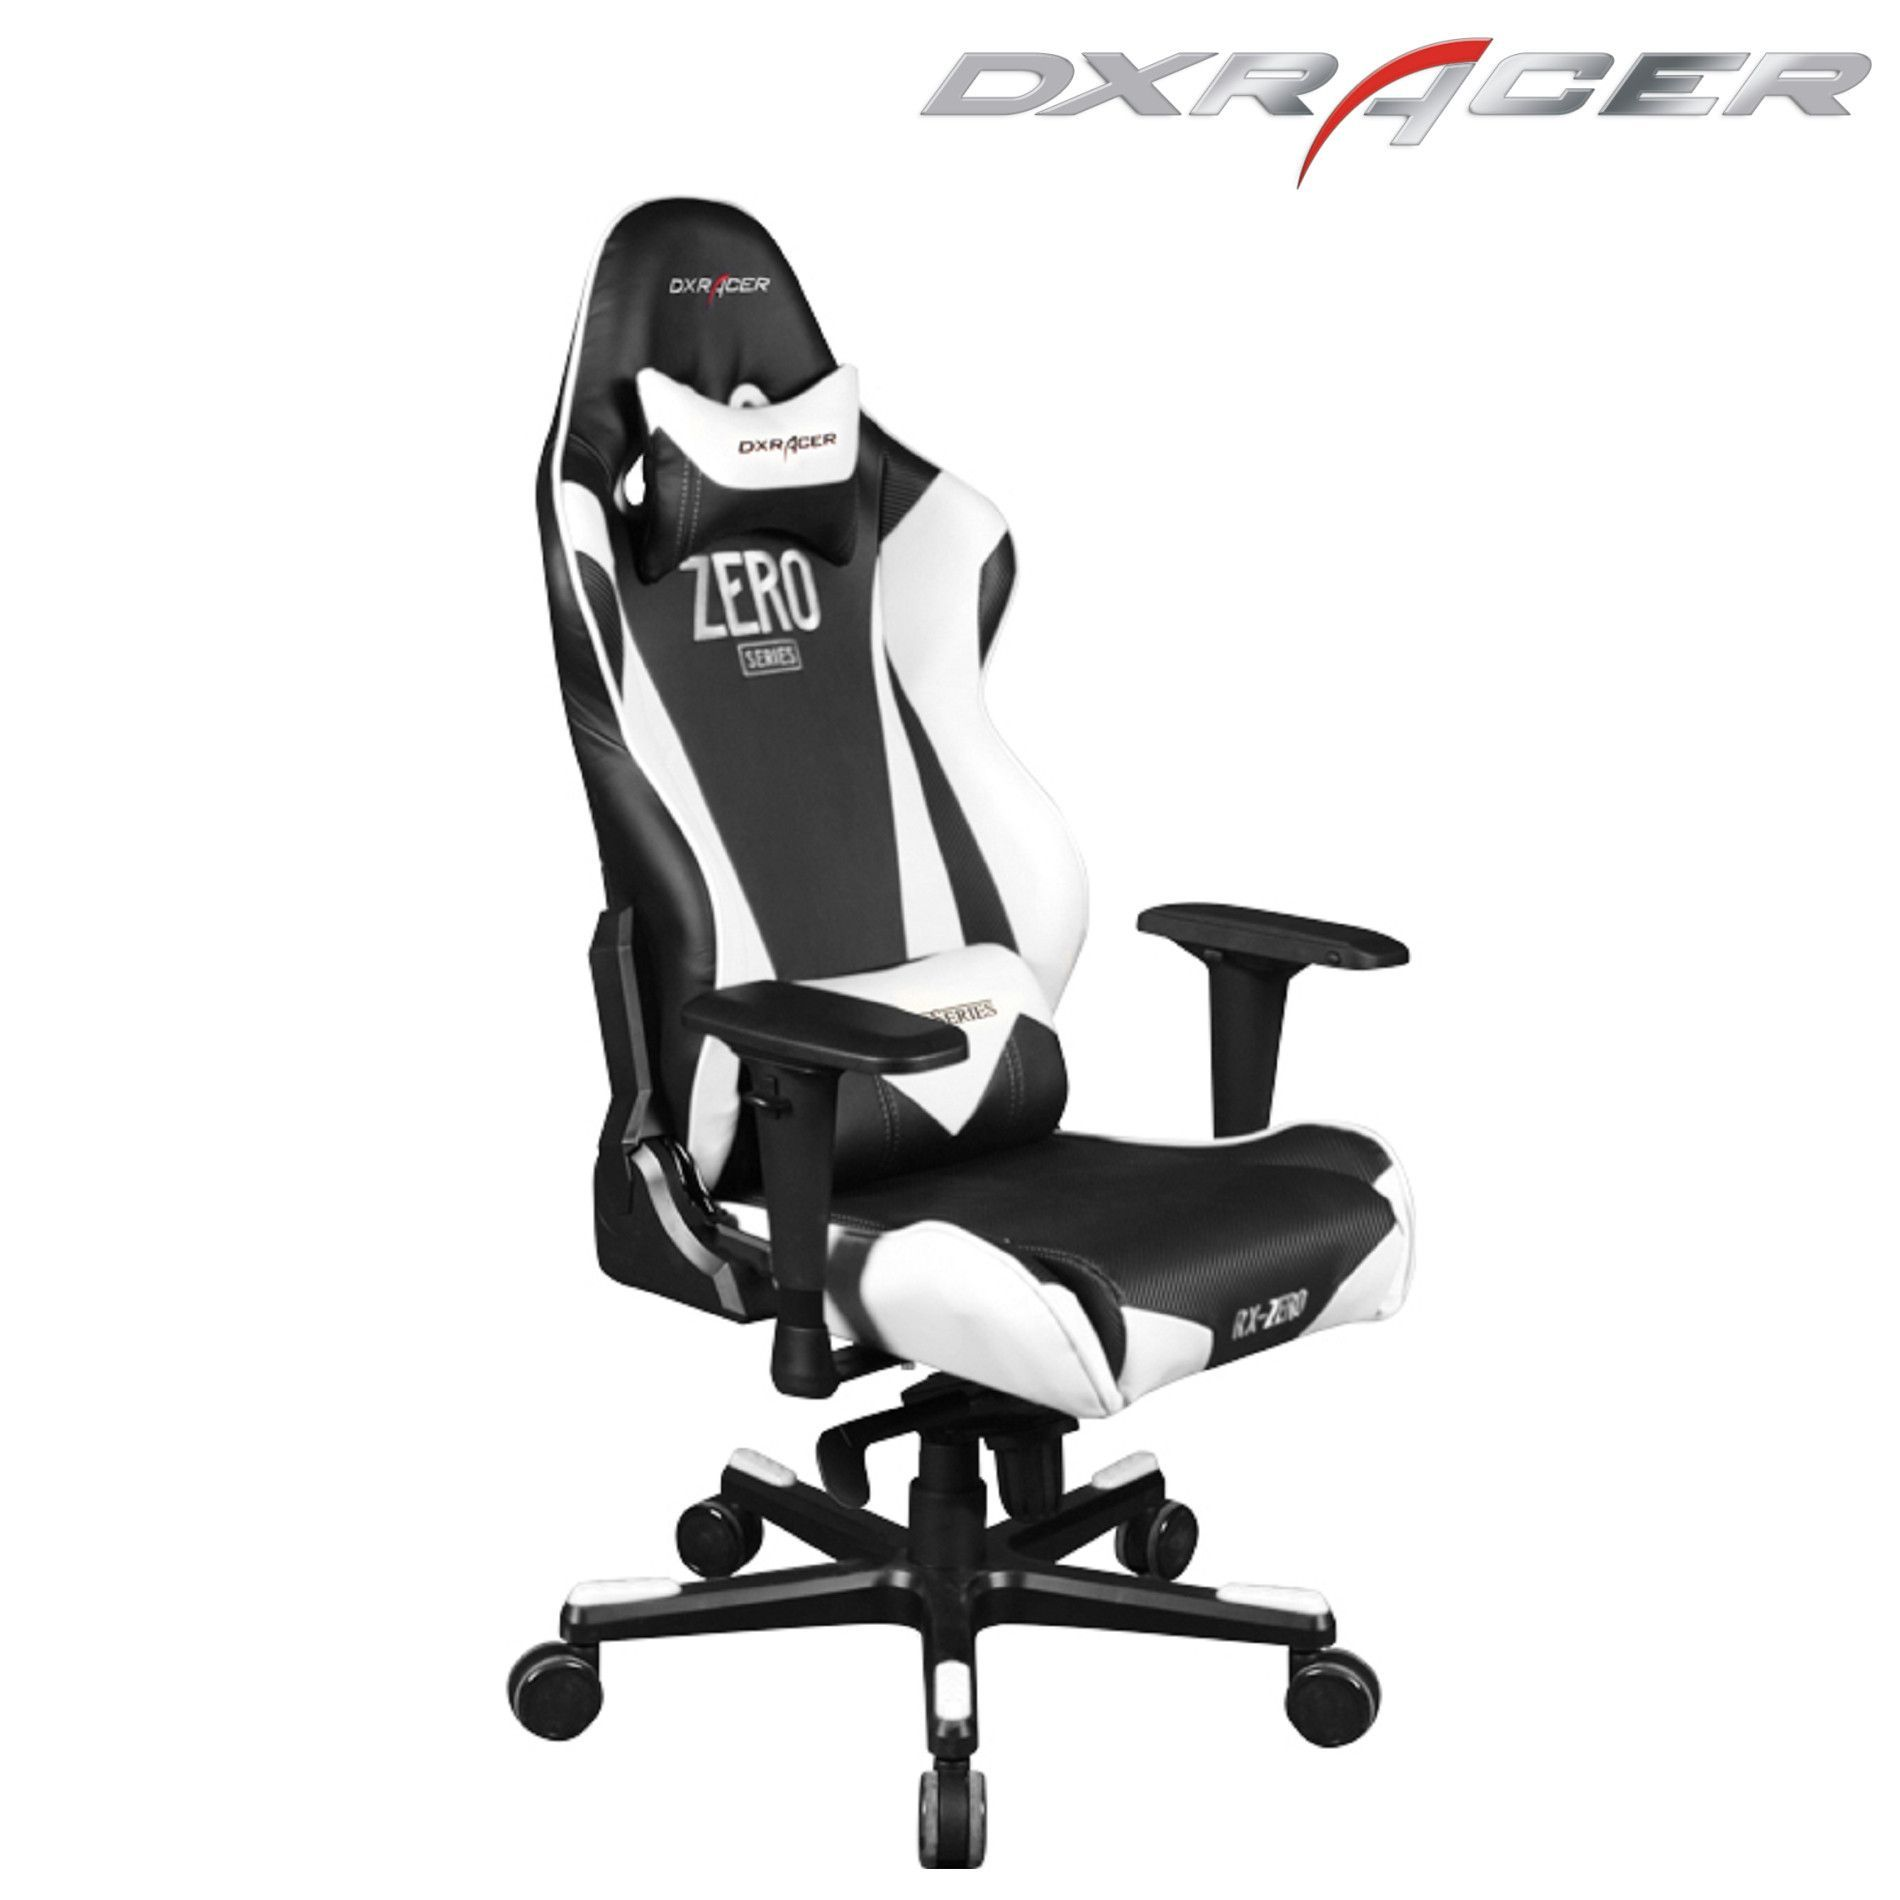 Dx Racer Sessel Dxracer Rj0iinw Computer Chair Office Chair Esport Chair Gaming